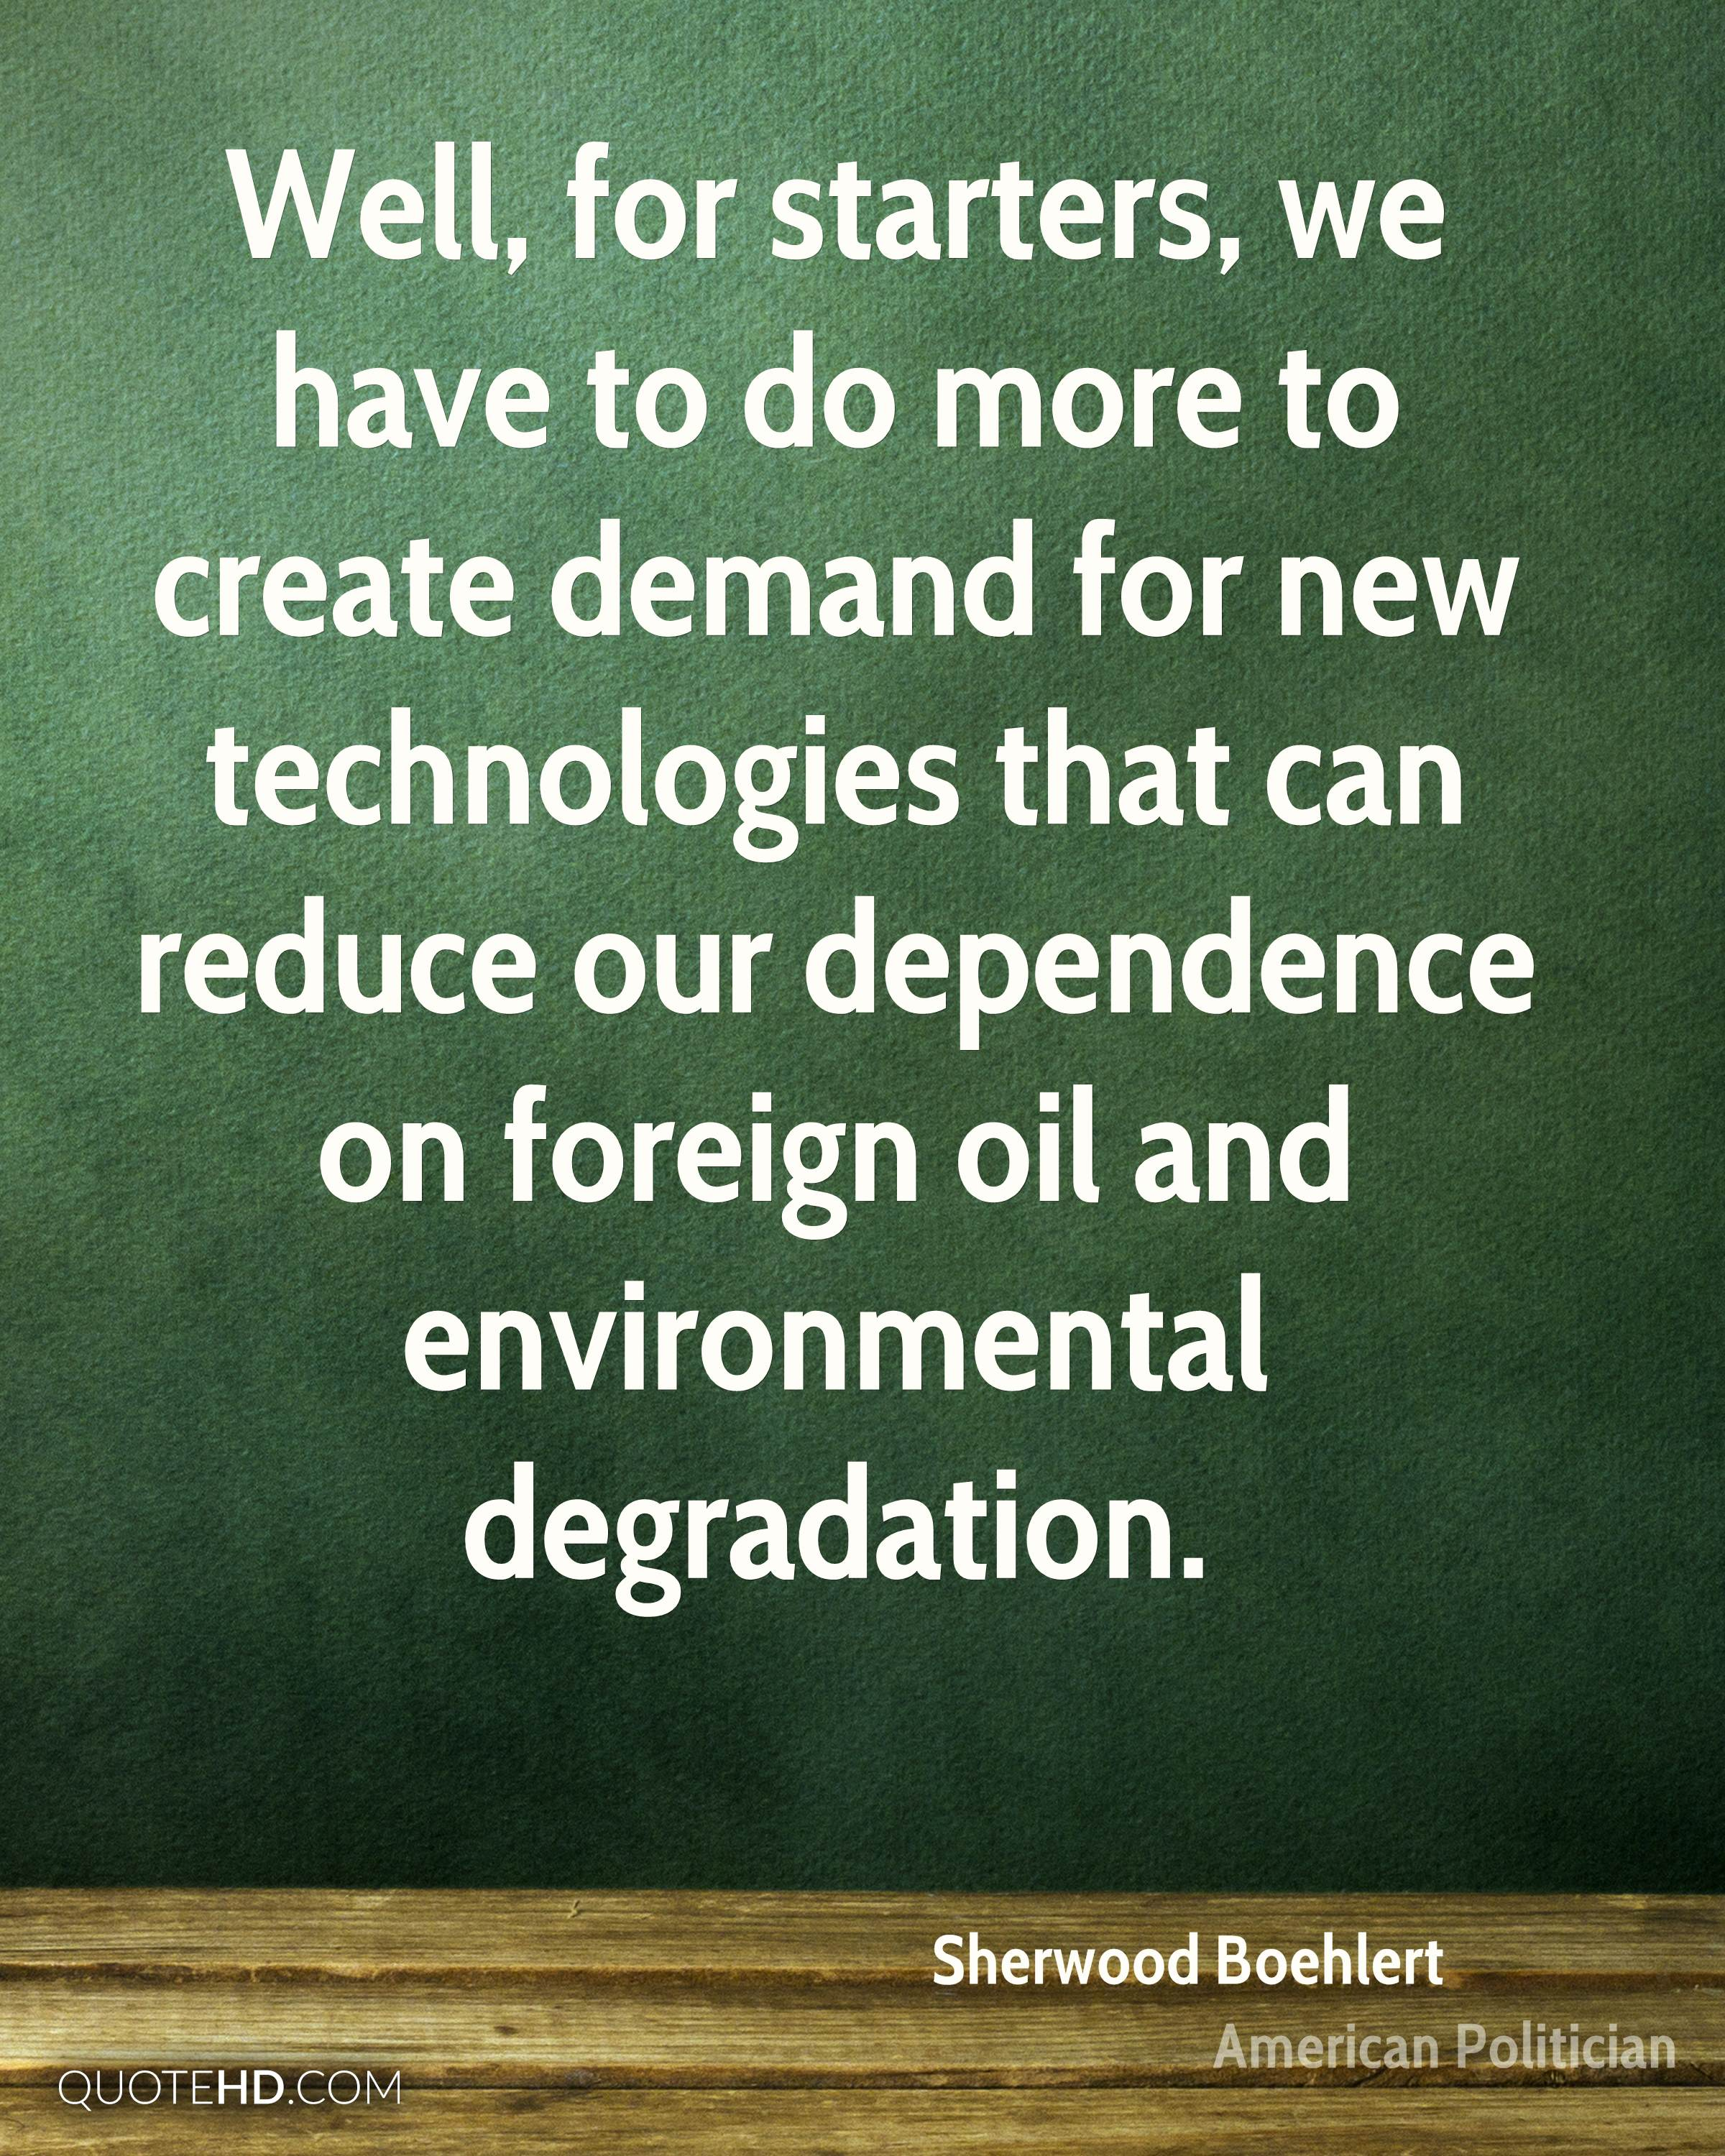 Well, for starters, we have to do more to create demand for new technologies that can reduce our dependence on foreign oil and environmental degradation.